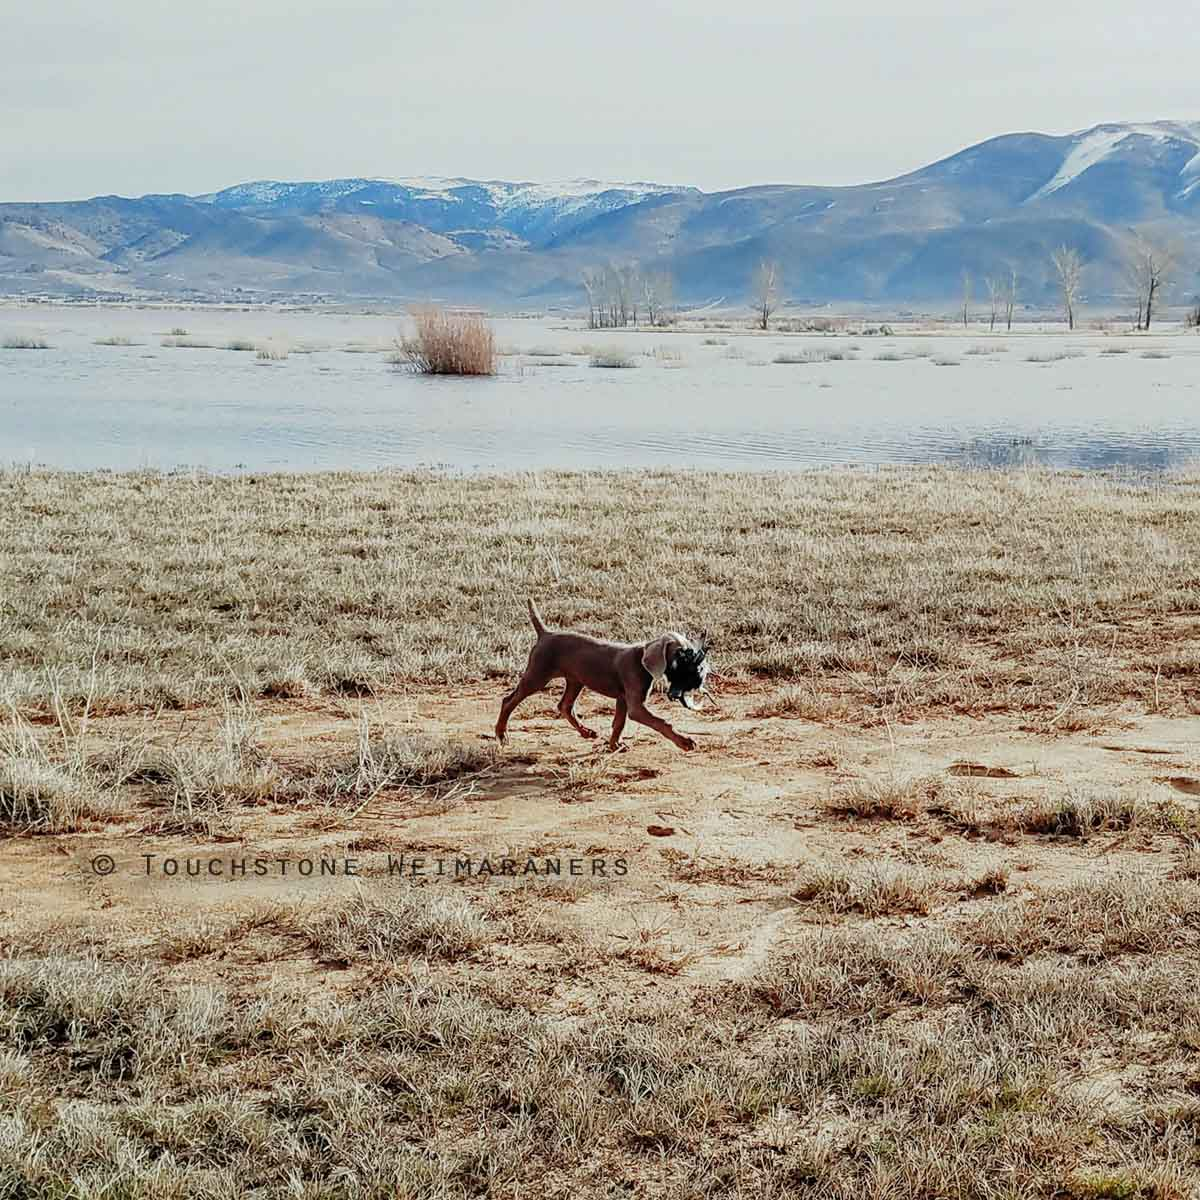 Co-Owned Touchstone Weimaraners